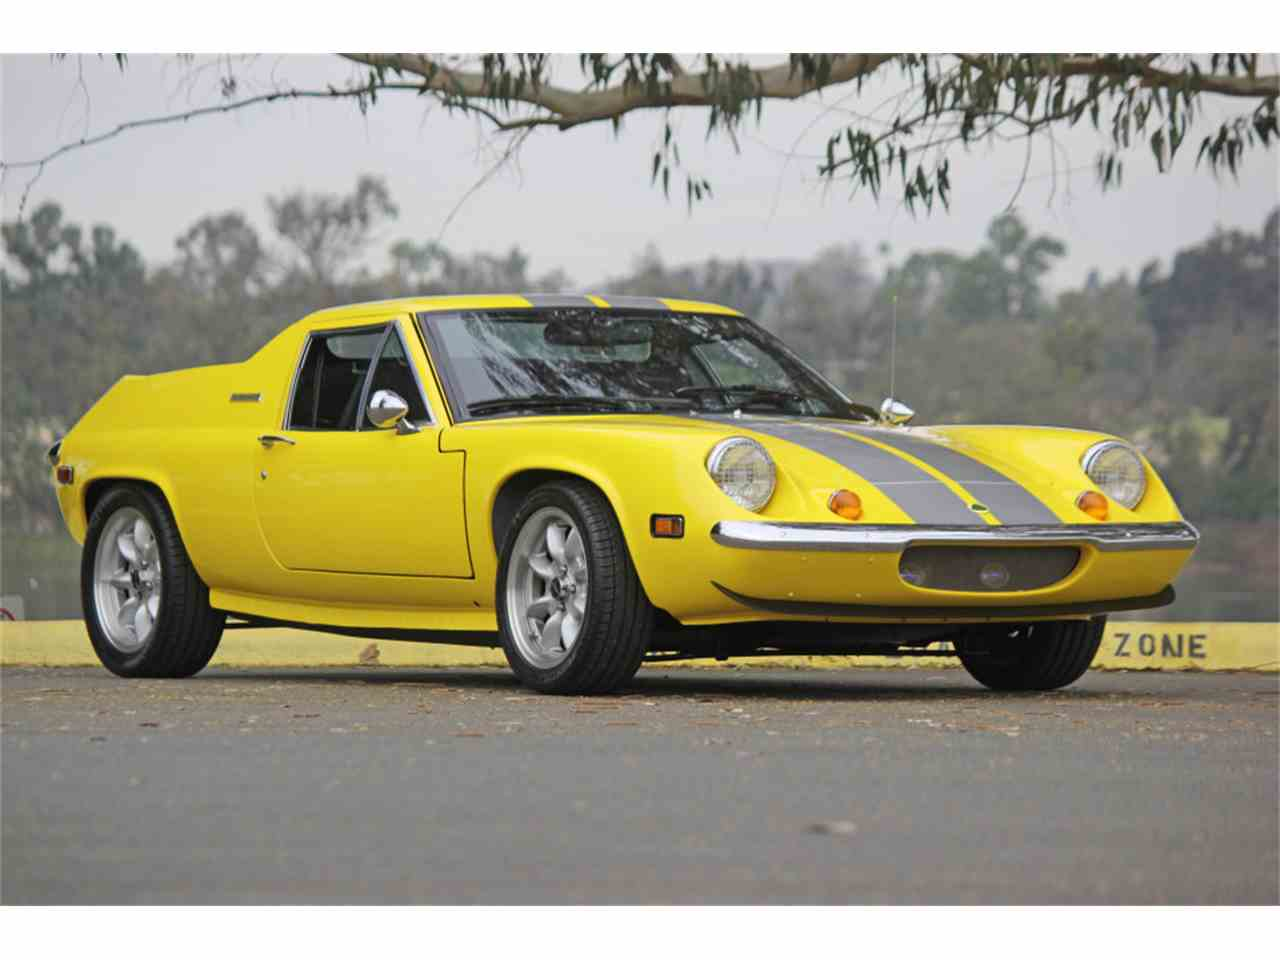 https://ccmarketplace.azureedge.net/cc-temp/listing/105/7263/10728145-1973-lotus-europa-std-c.jpg